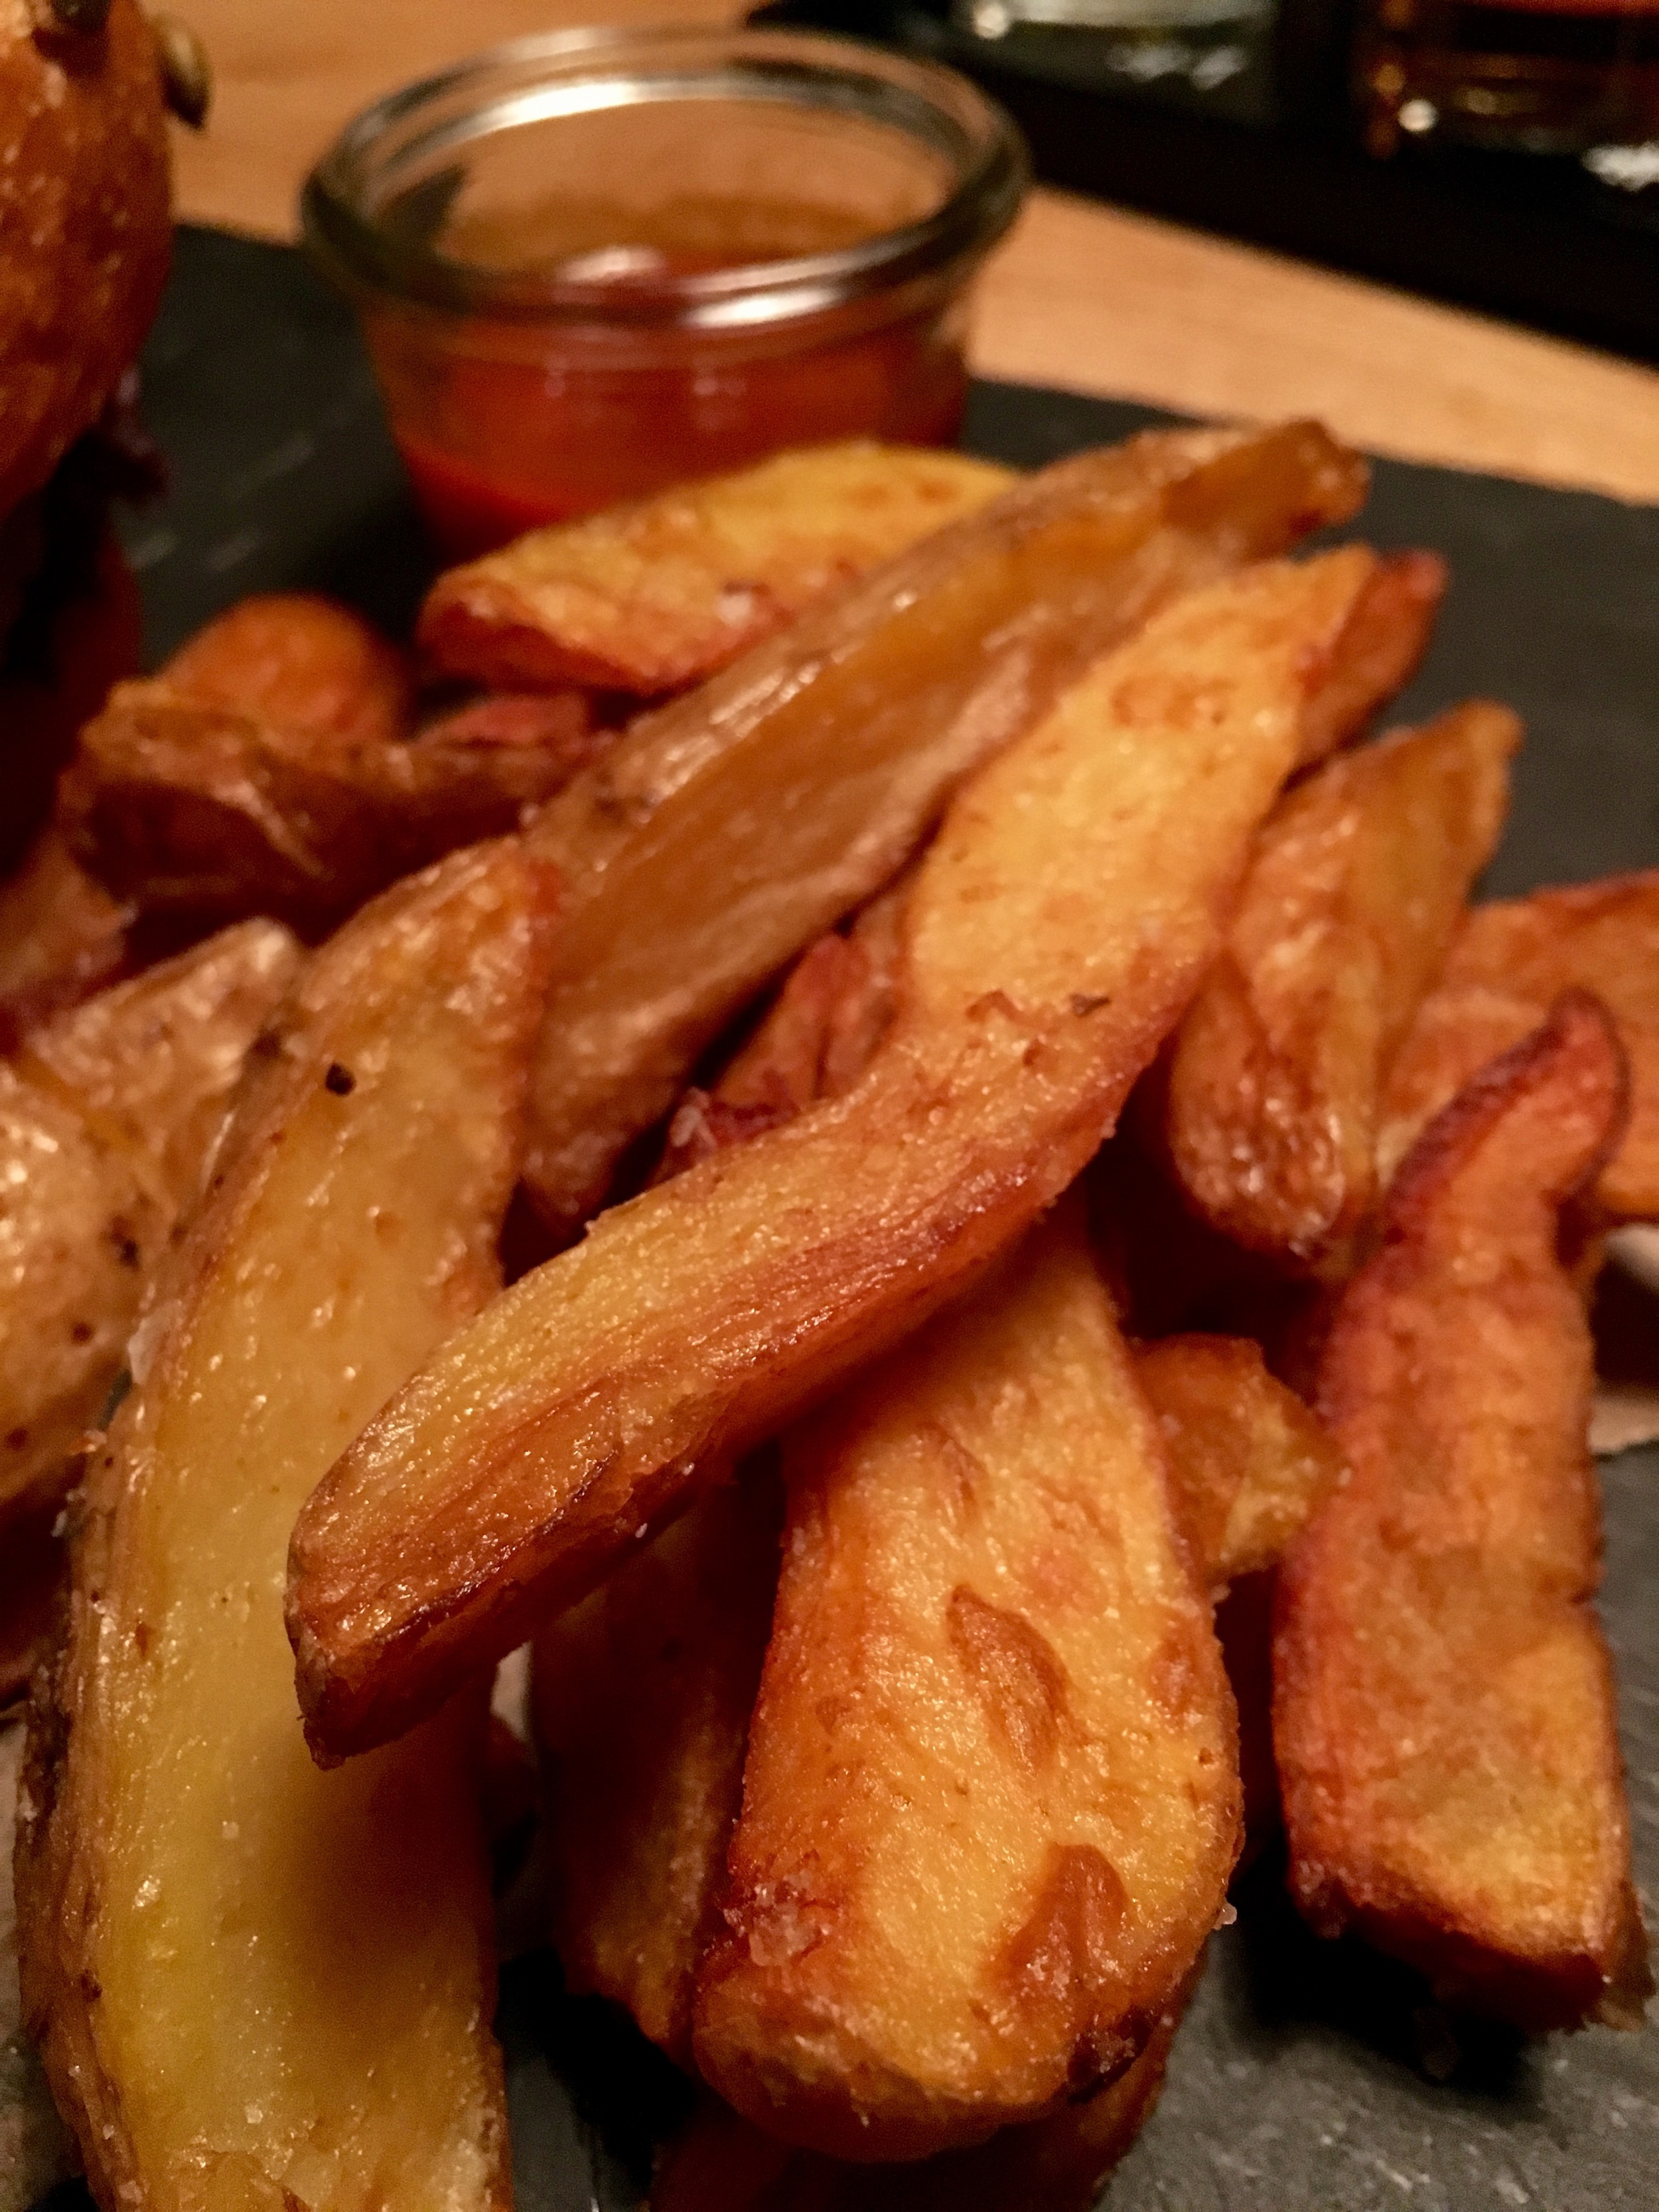 Homemade potato wedges and ketchup